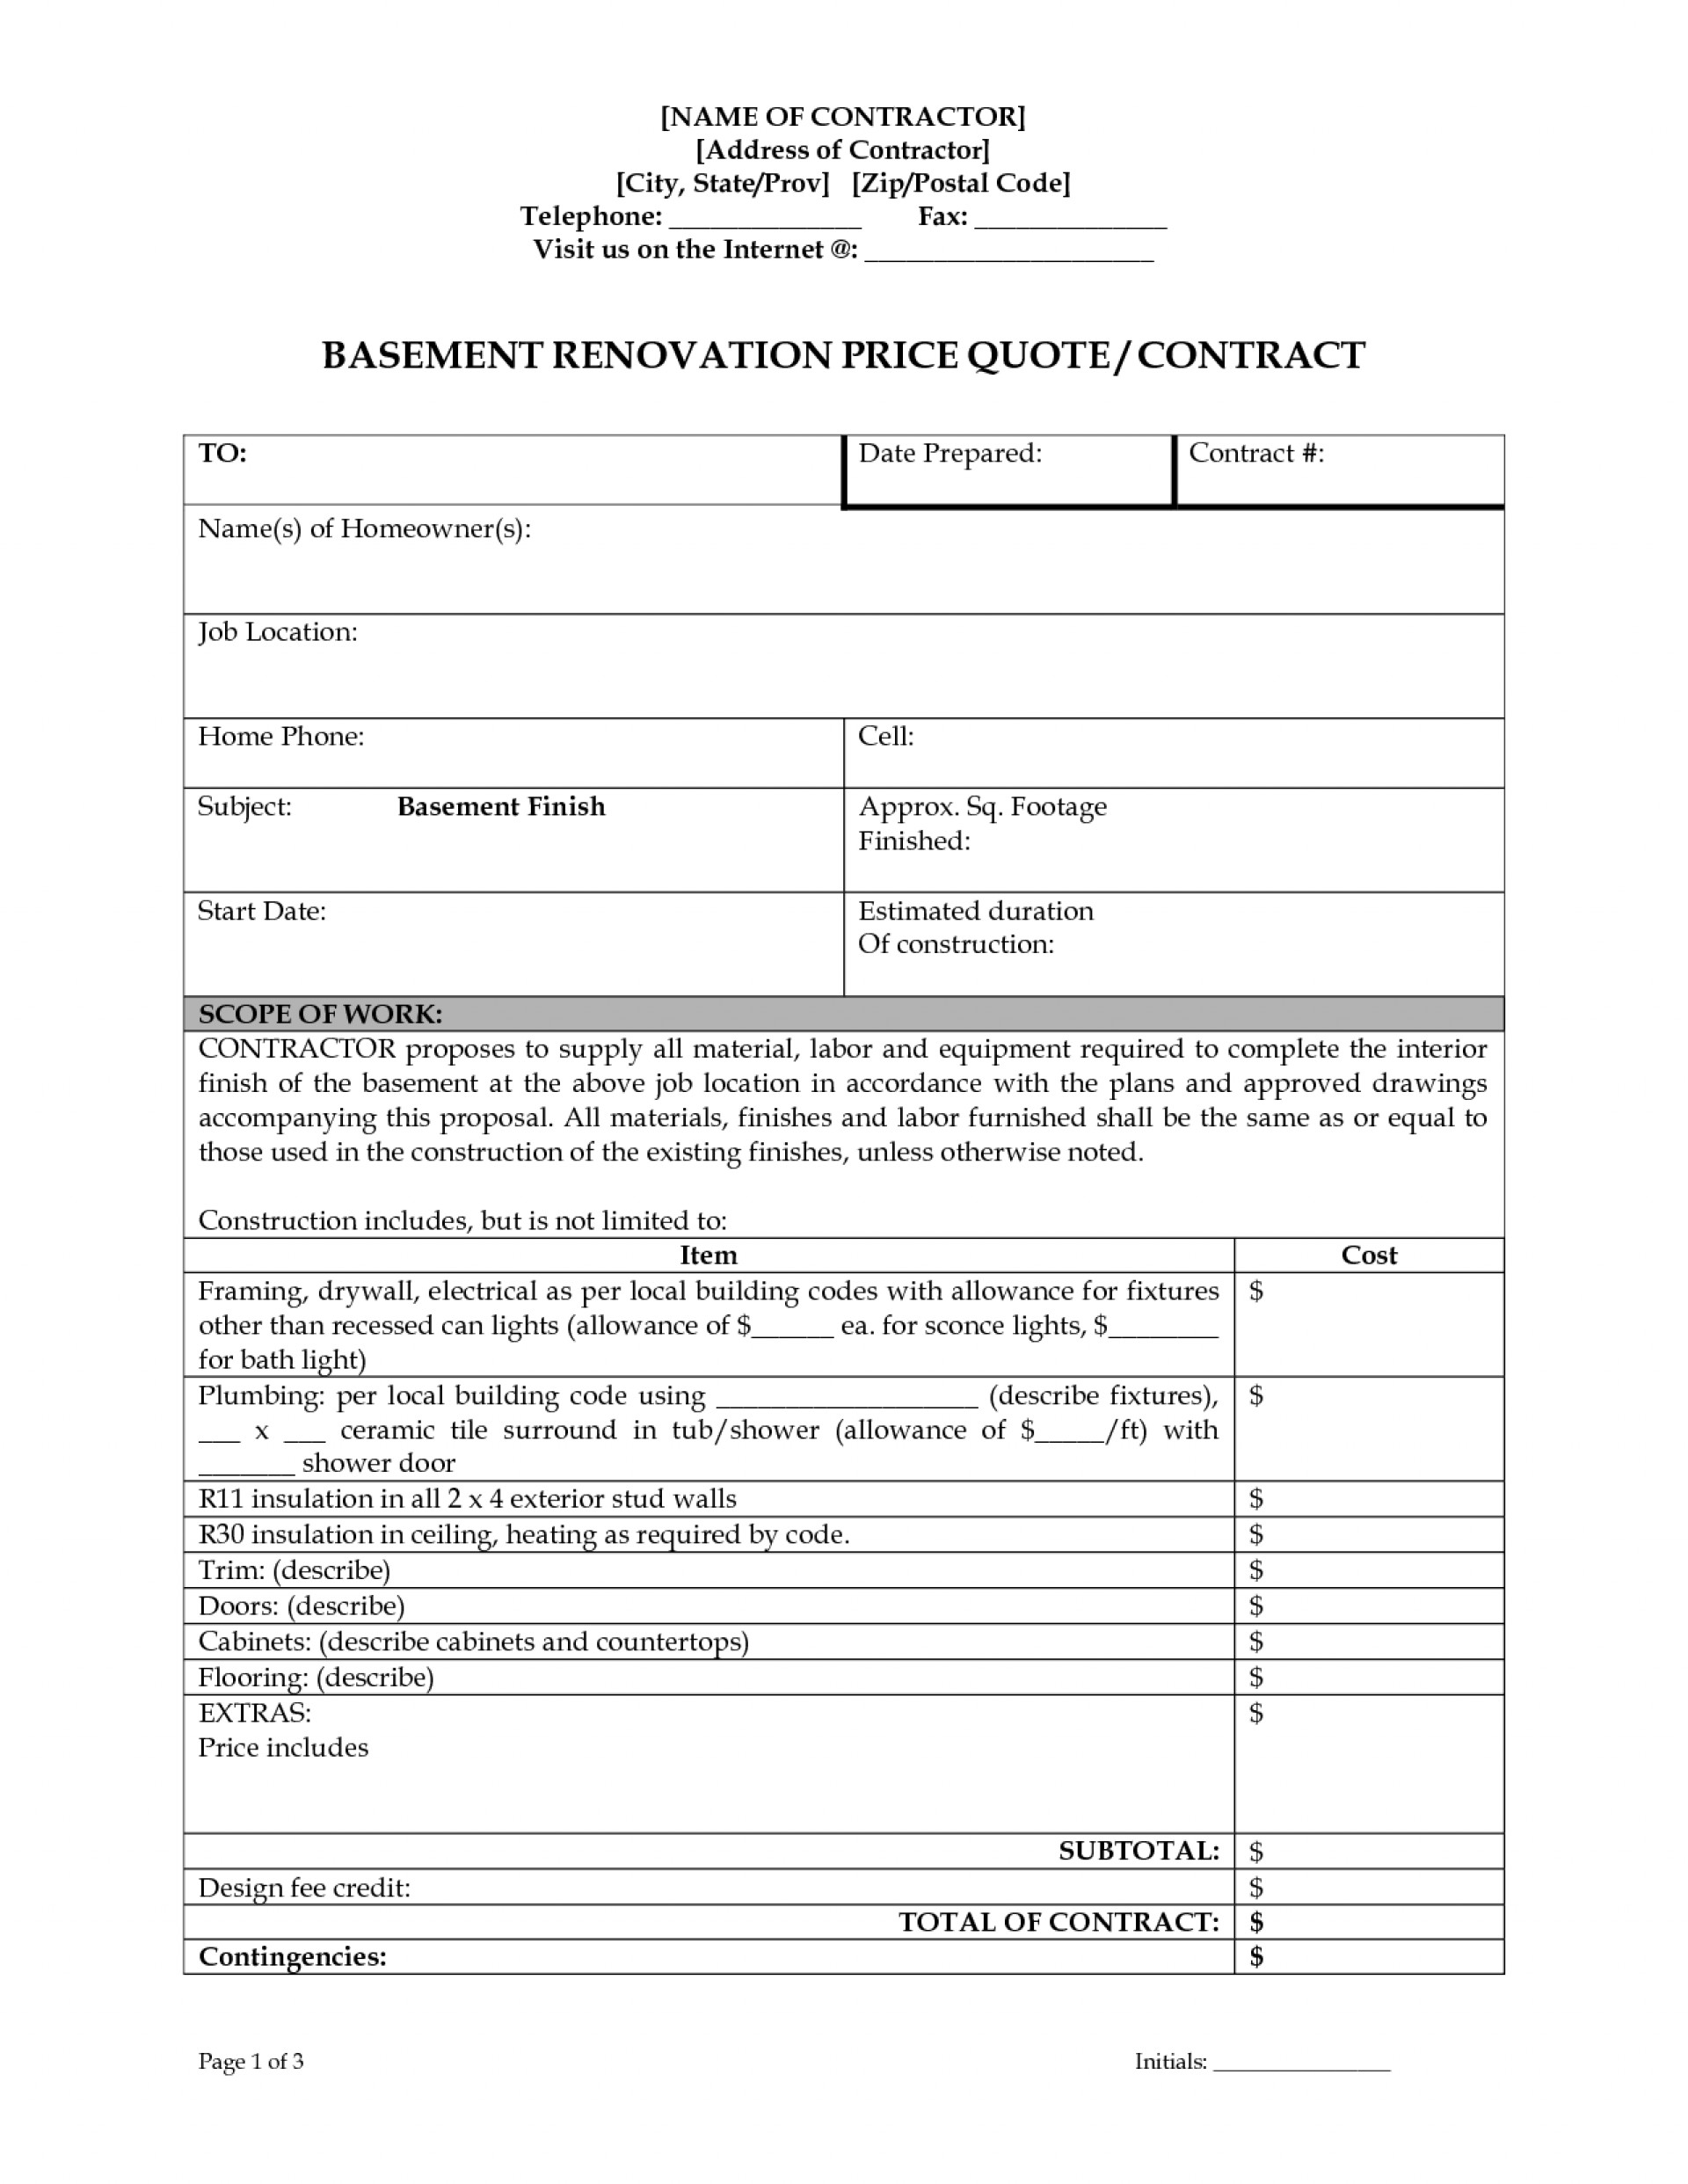 003 Unusual Home Remodeling Contract Template Design  Improvement Example Pdf Maryland1920